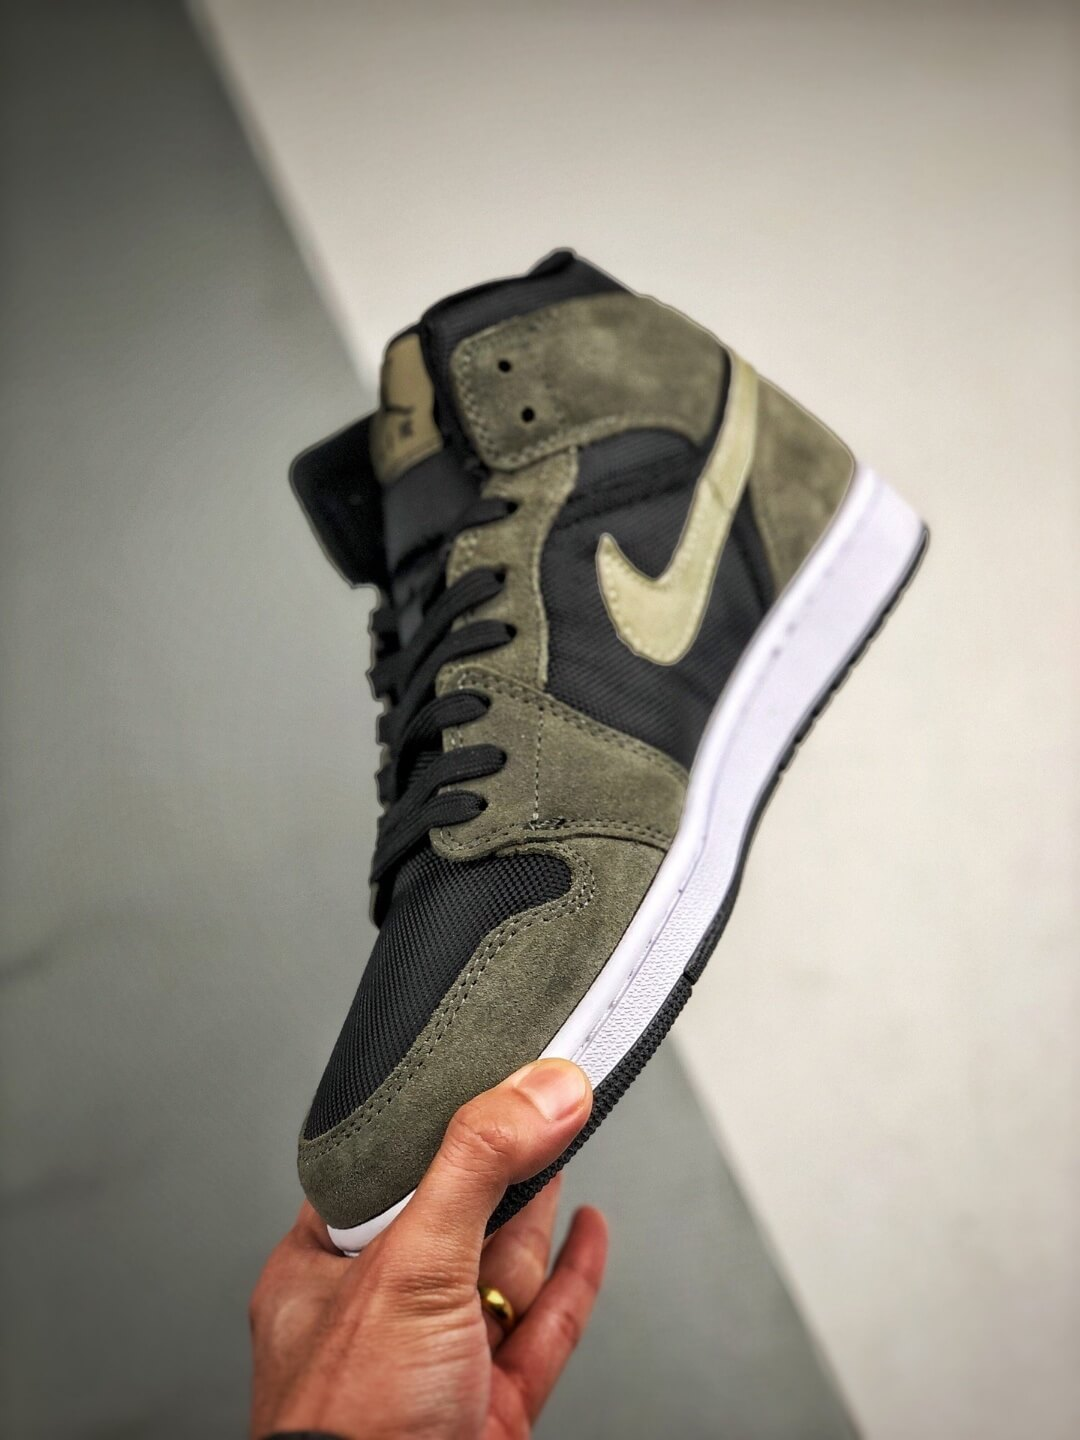 The Nike Wmns Air Jordan 1 Mid Olive Black Mesh Underlay Olive Tan Suede Overlay Repshoes 04